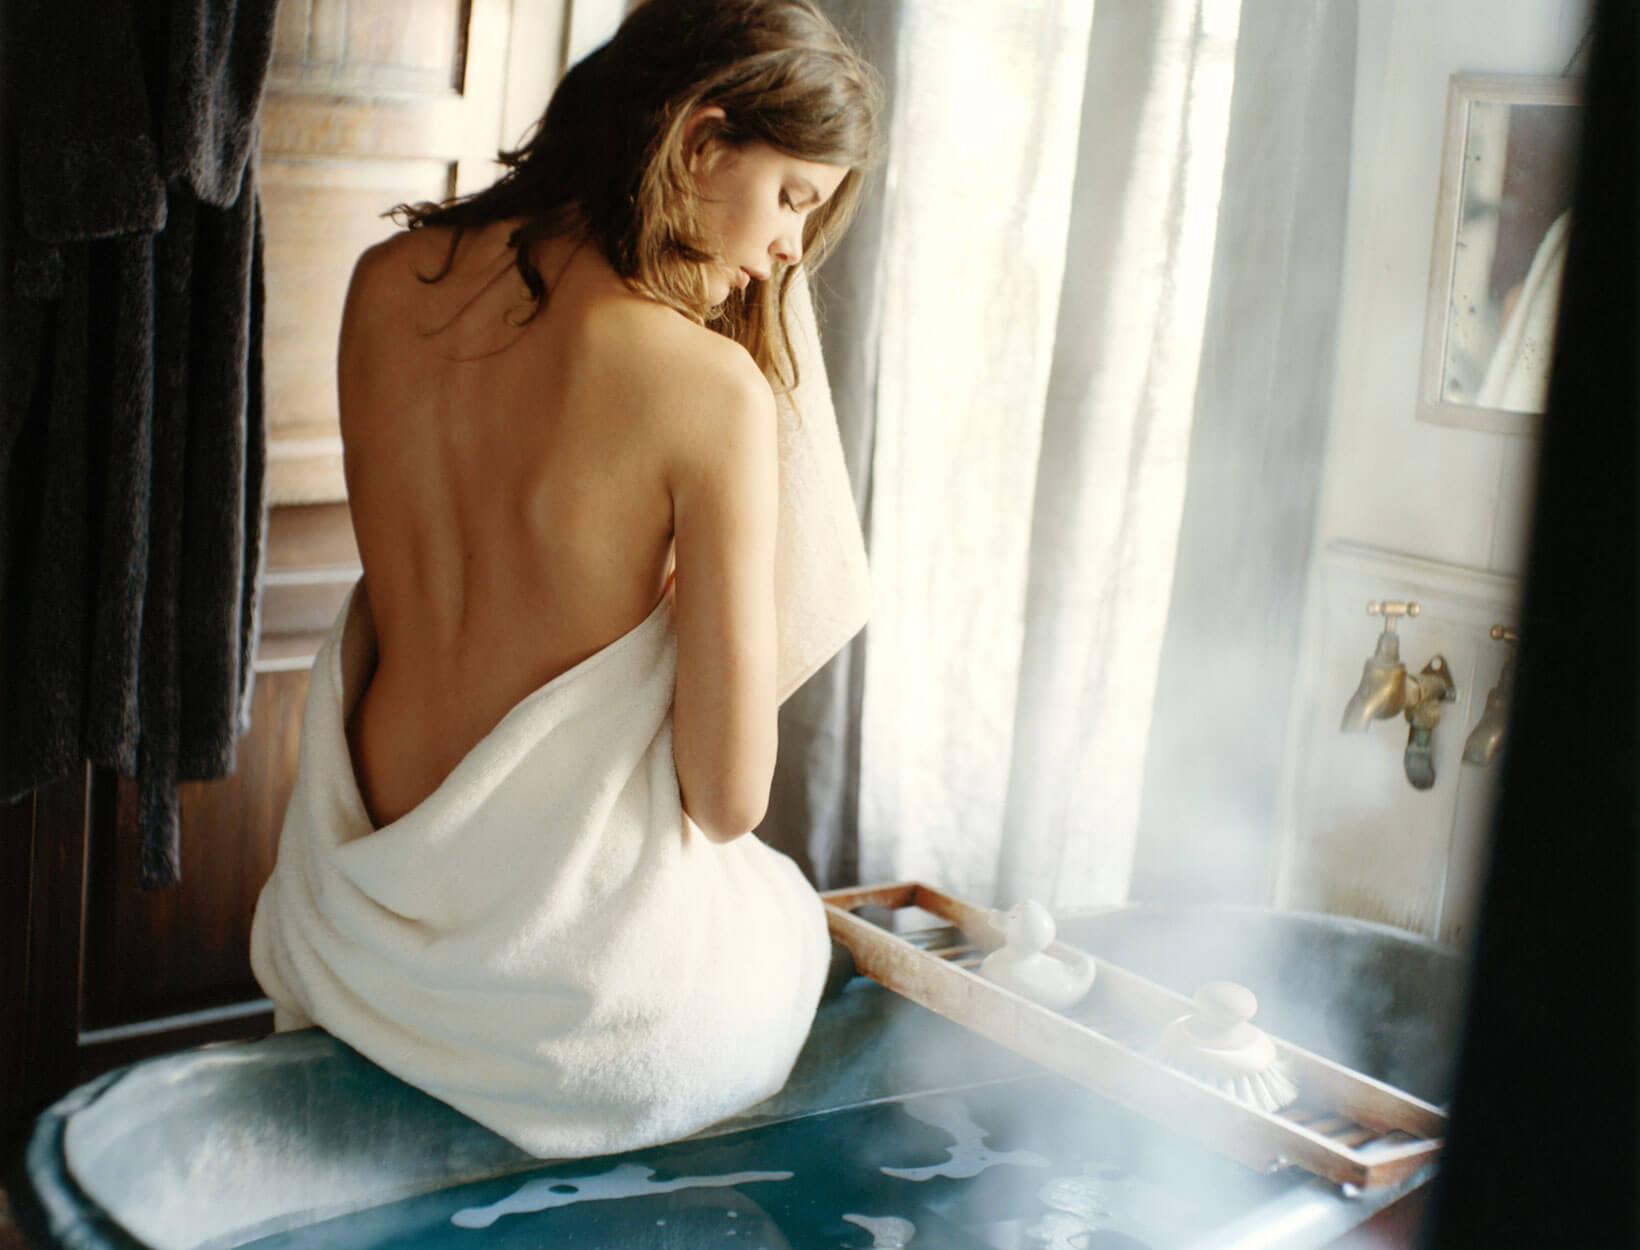 a woman in a towel sitting on the edge of a bathtub